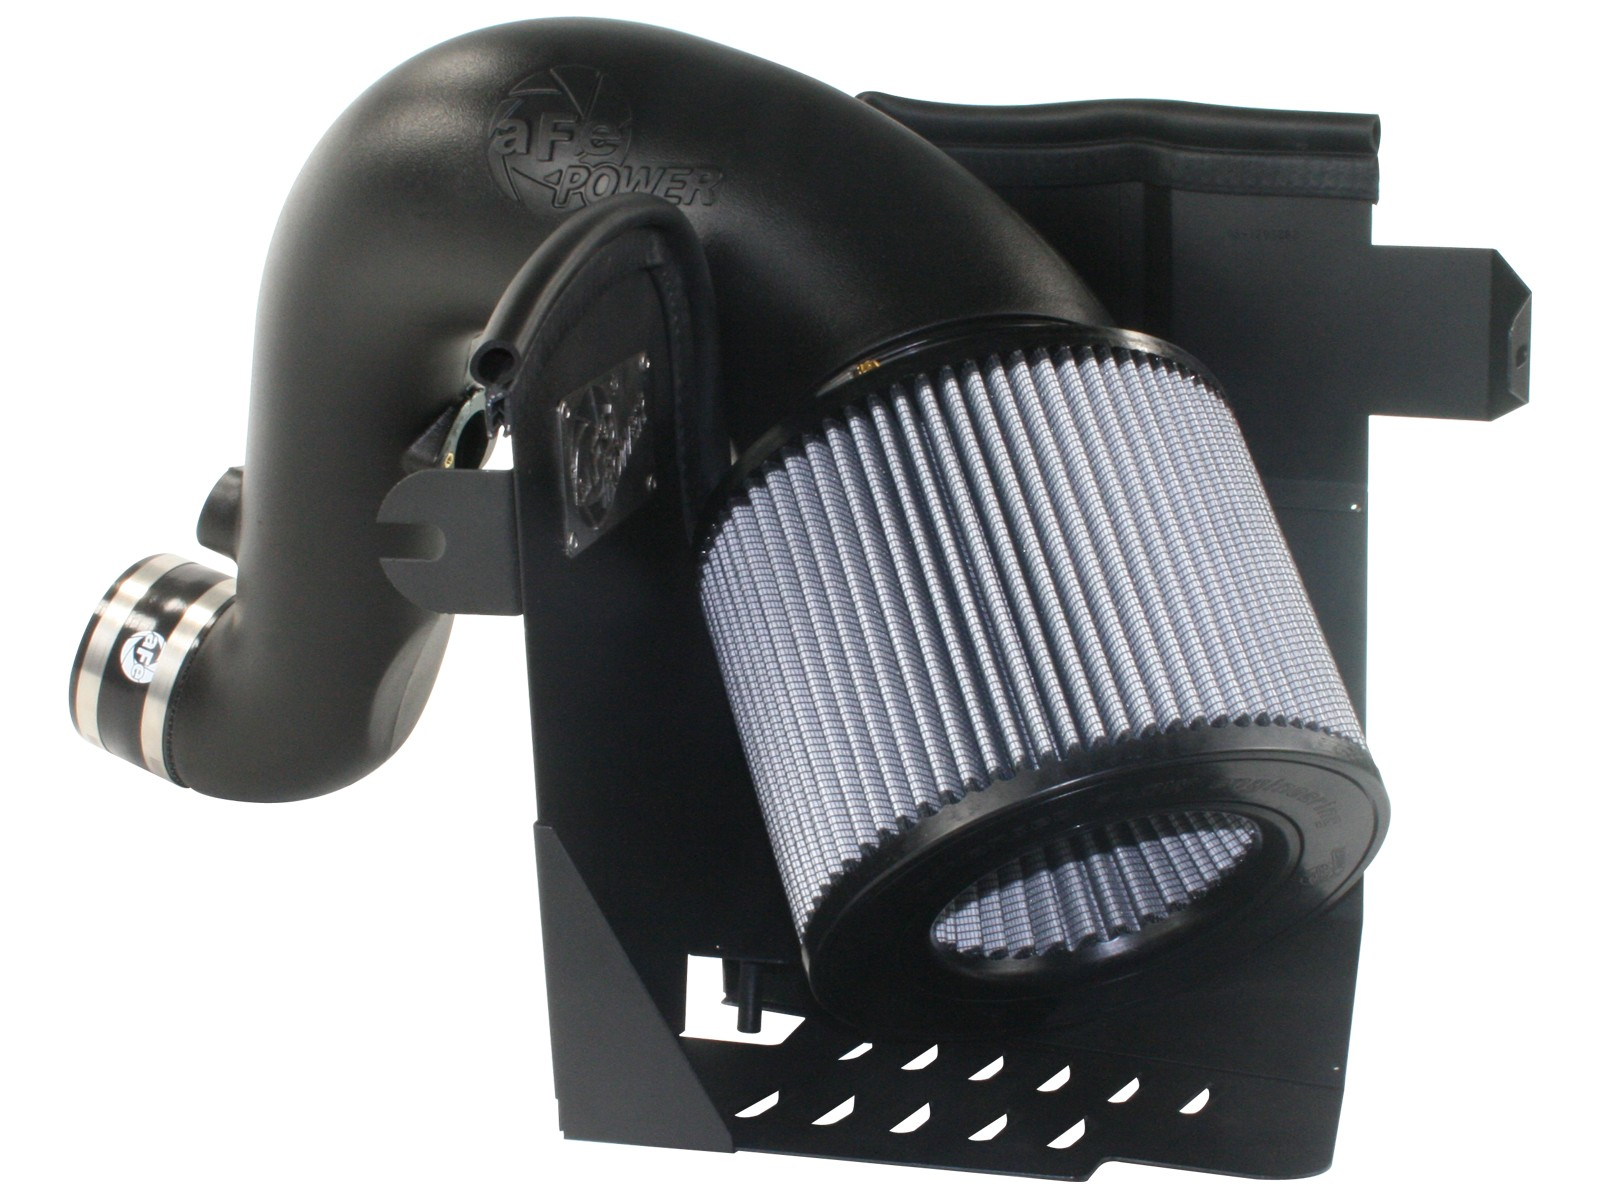 aFe POWER 51-12032 Magnum FORCE Stage-2 Pro DRY S Cold Air Intake System